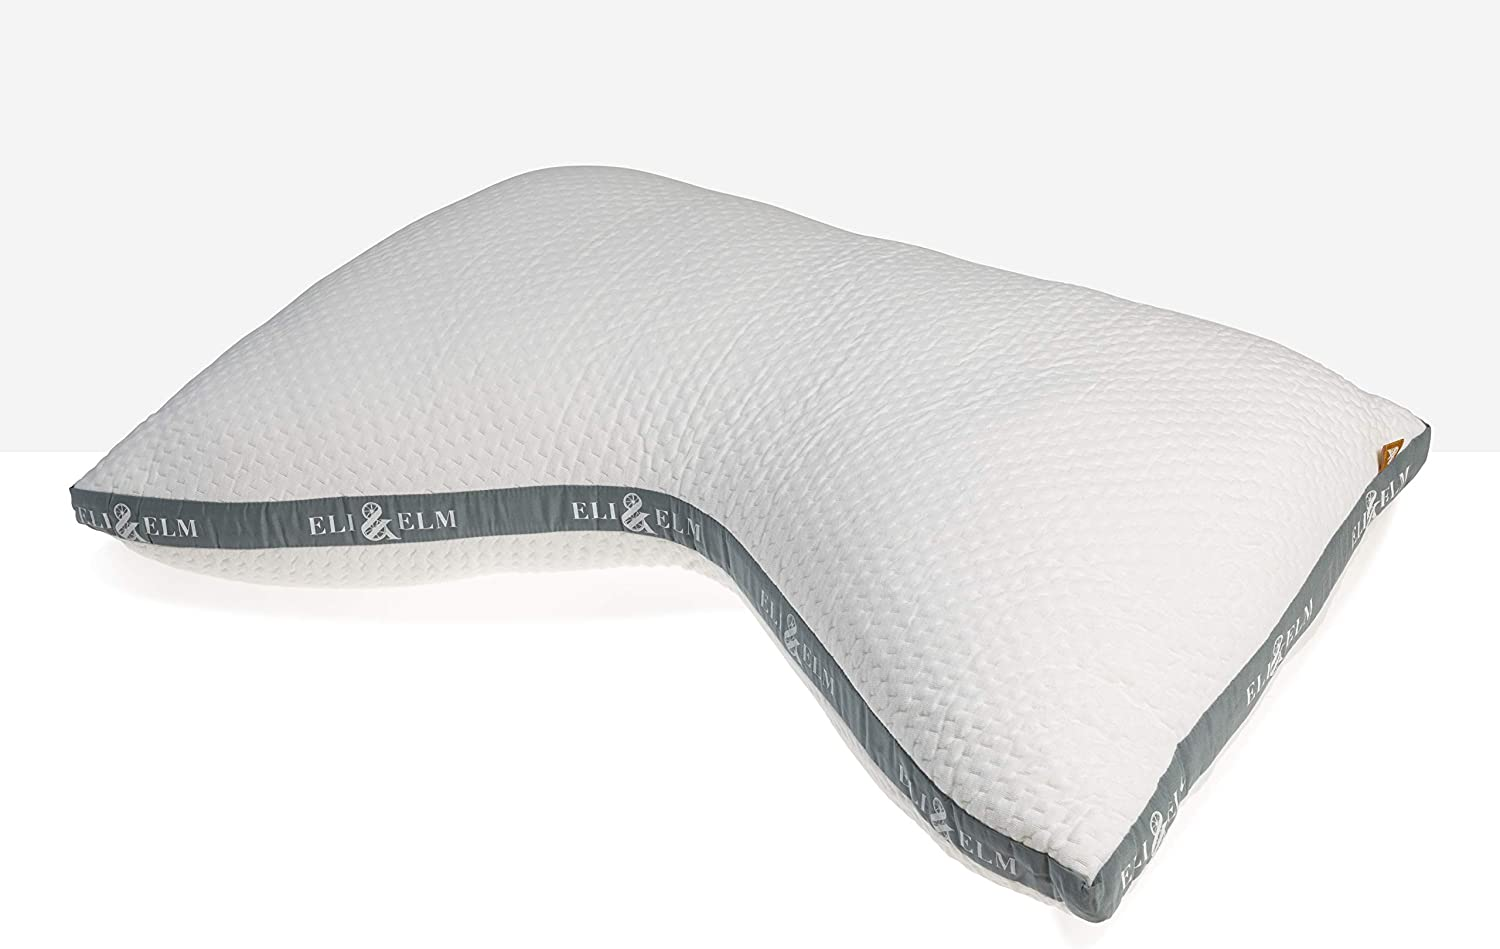 Eli & Elm | Ultimate Pillow for Side Sleepers with Adjustable Filler to Get The Perfect Contour Curved Pillow for A Neck Pain Relief Sleep - Hypoallergenic Cotton Sleeping Surface- 17